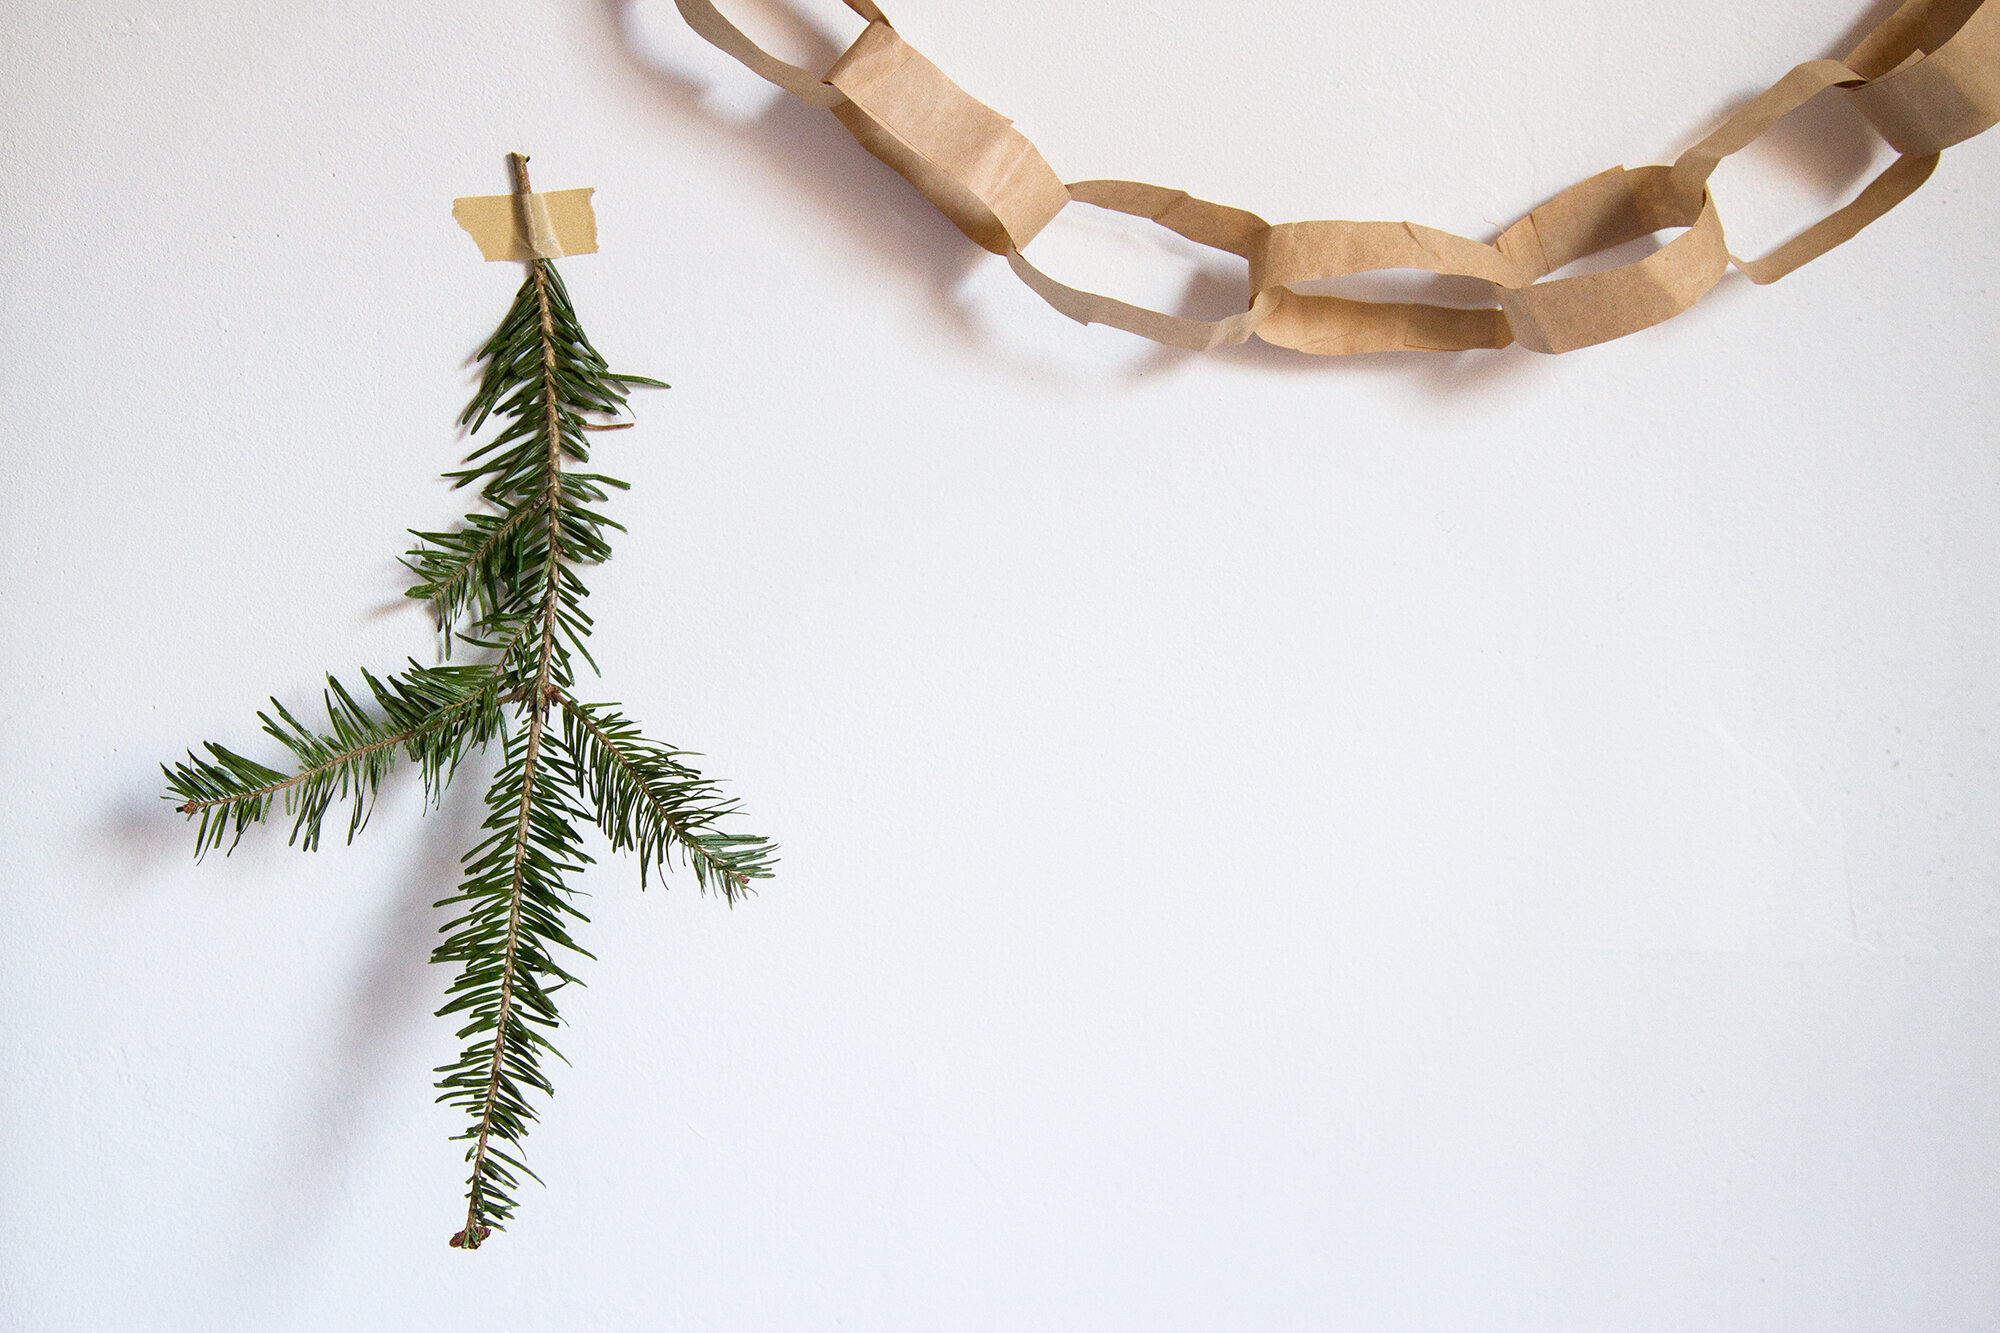 zero-waste efforts at the holidays | reading my tea leaves